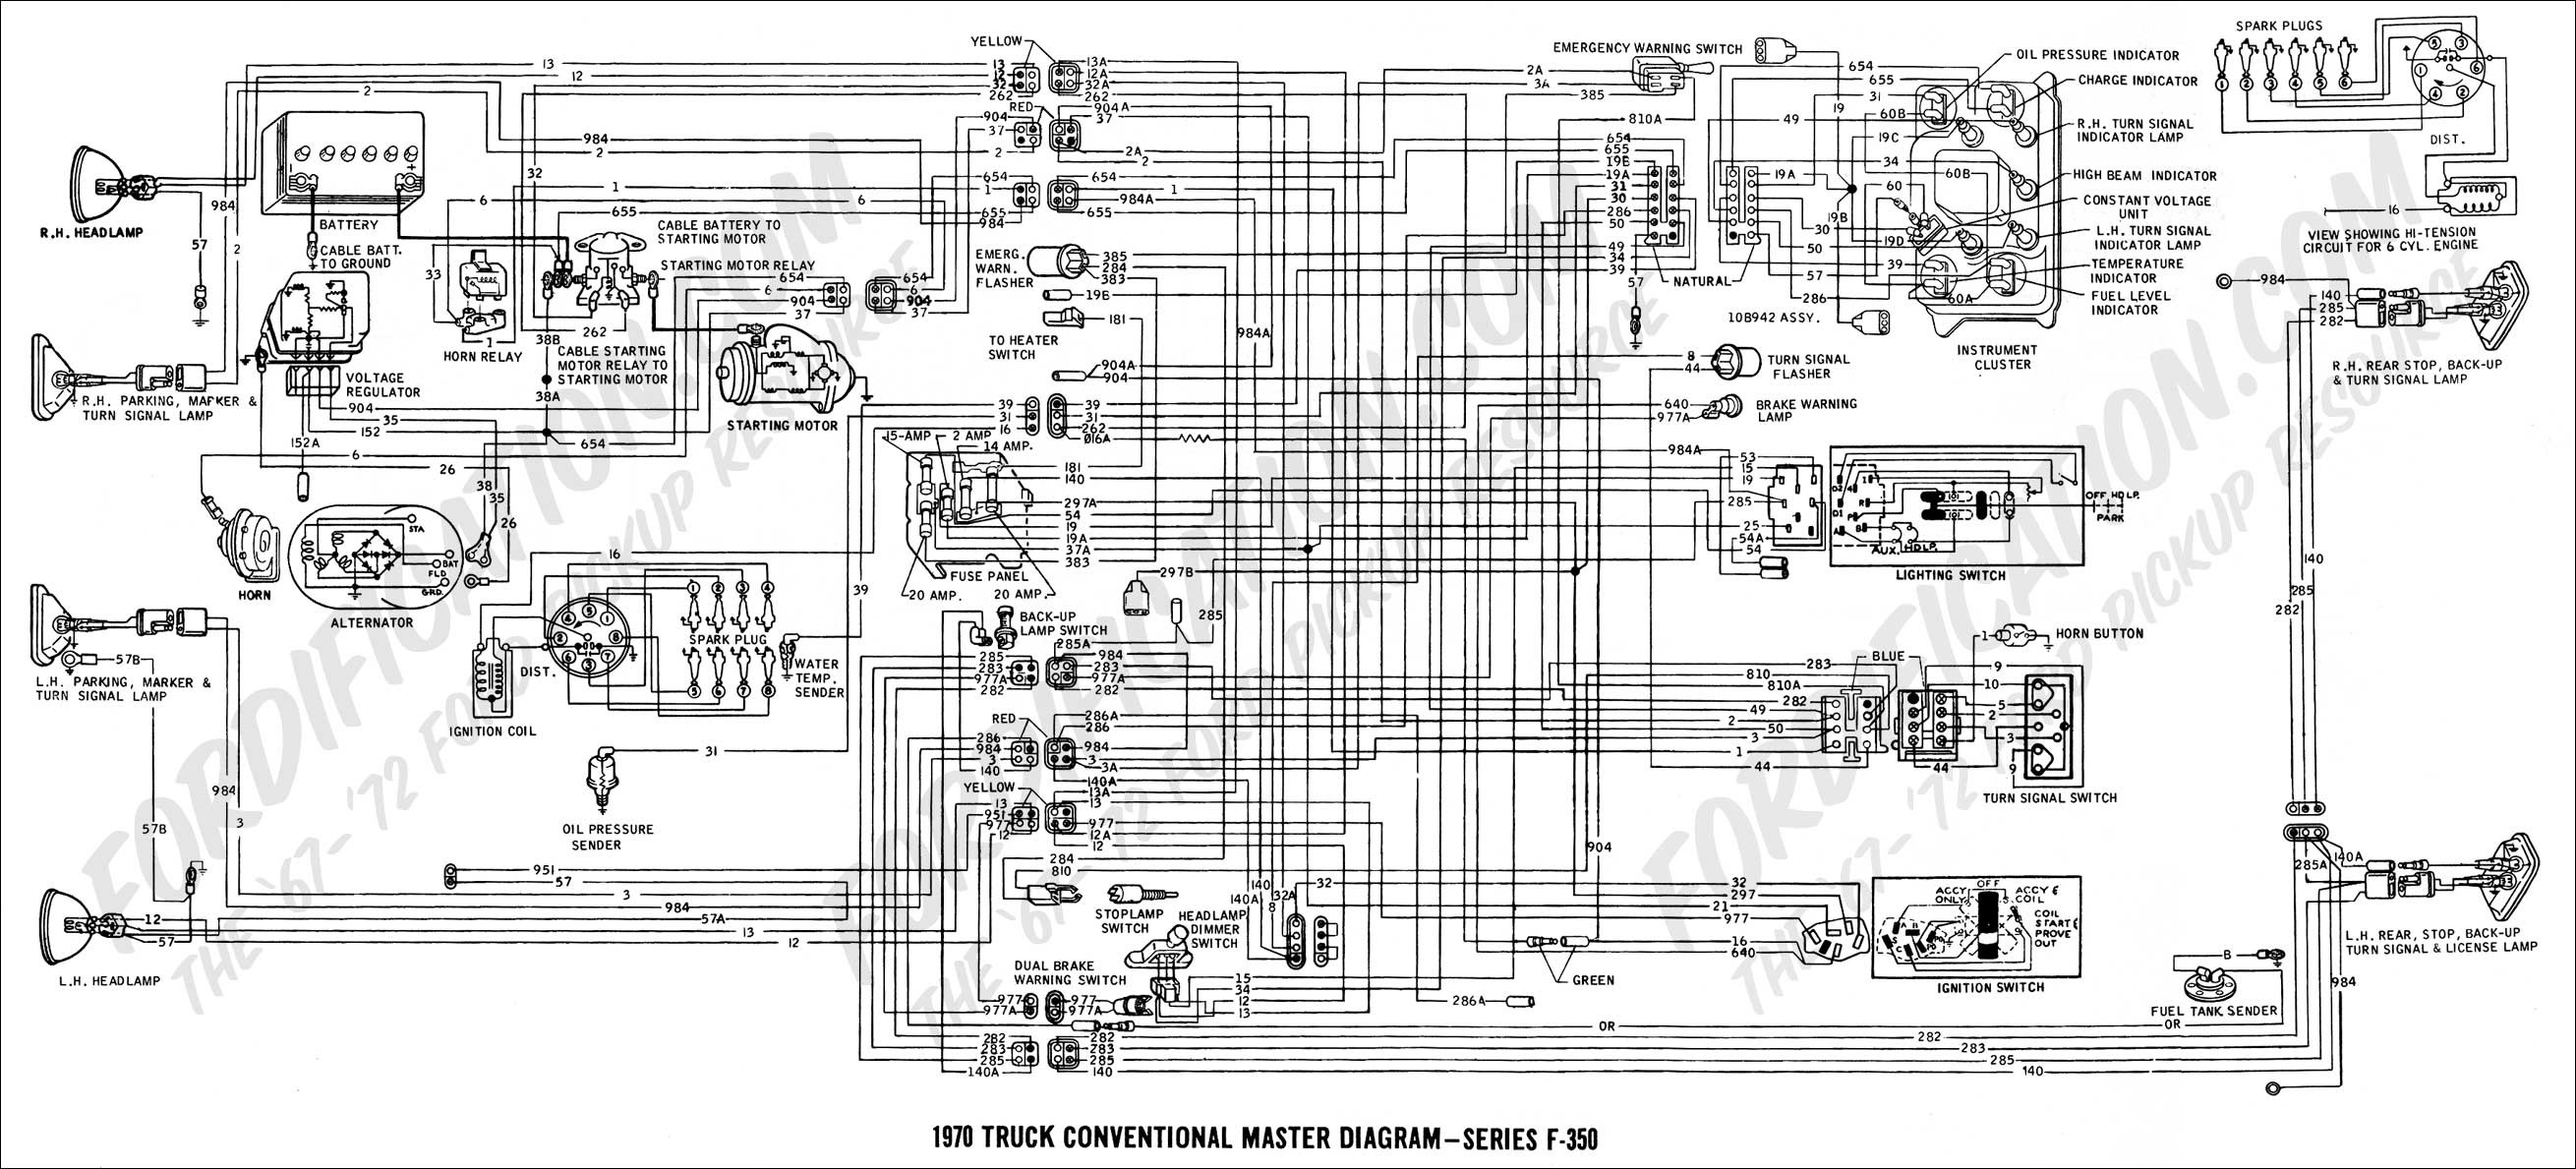 Ford Ka Engine Diagram ford Truck Technical Drawings and Schematics Section H Wiring Fair Of Ford Ka Engine Diagram